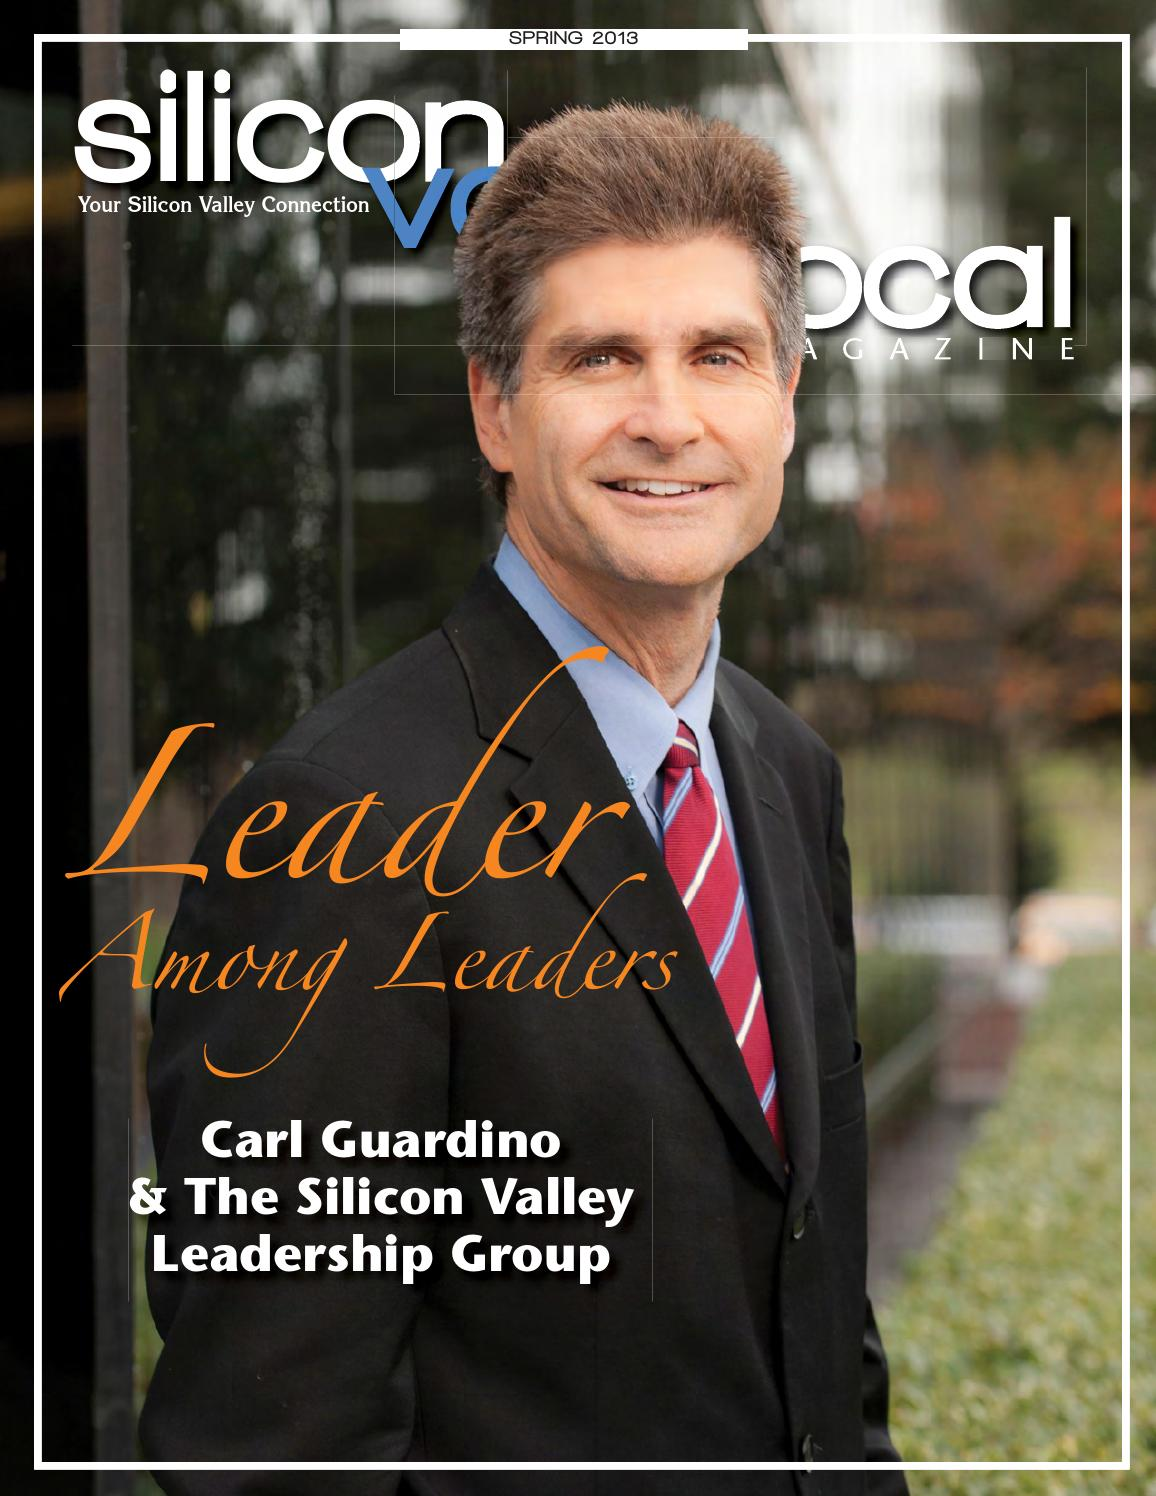 Silicon Valley Local Magazine Summer 2013 by Rich Borell - issuu